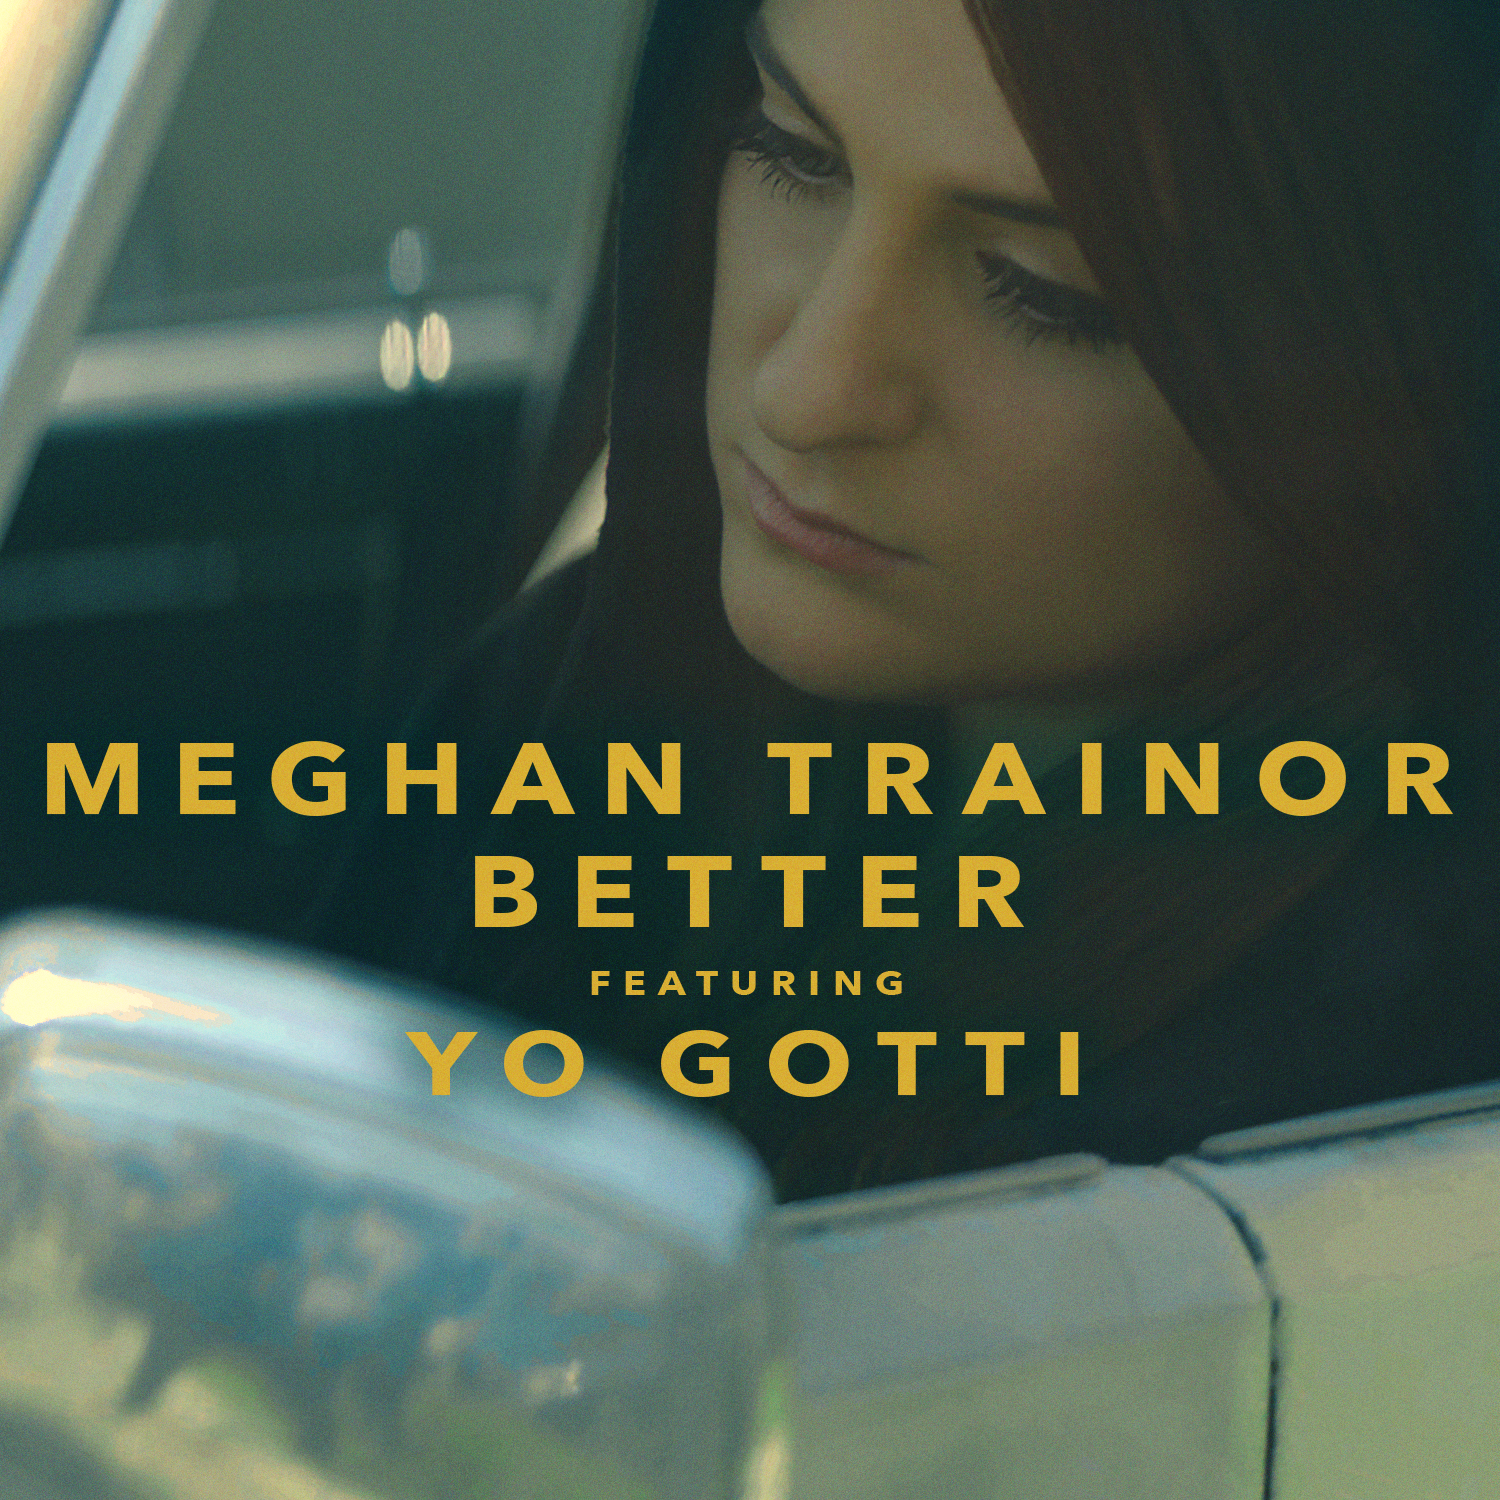 MEGHAN TRAINOR PREMIERES MUSIC VIDEO FOR NEW SINGLE